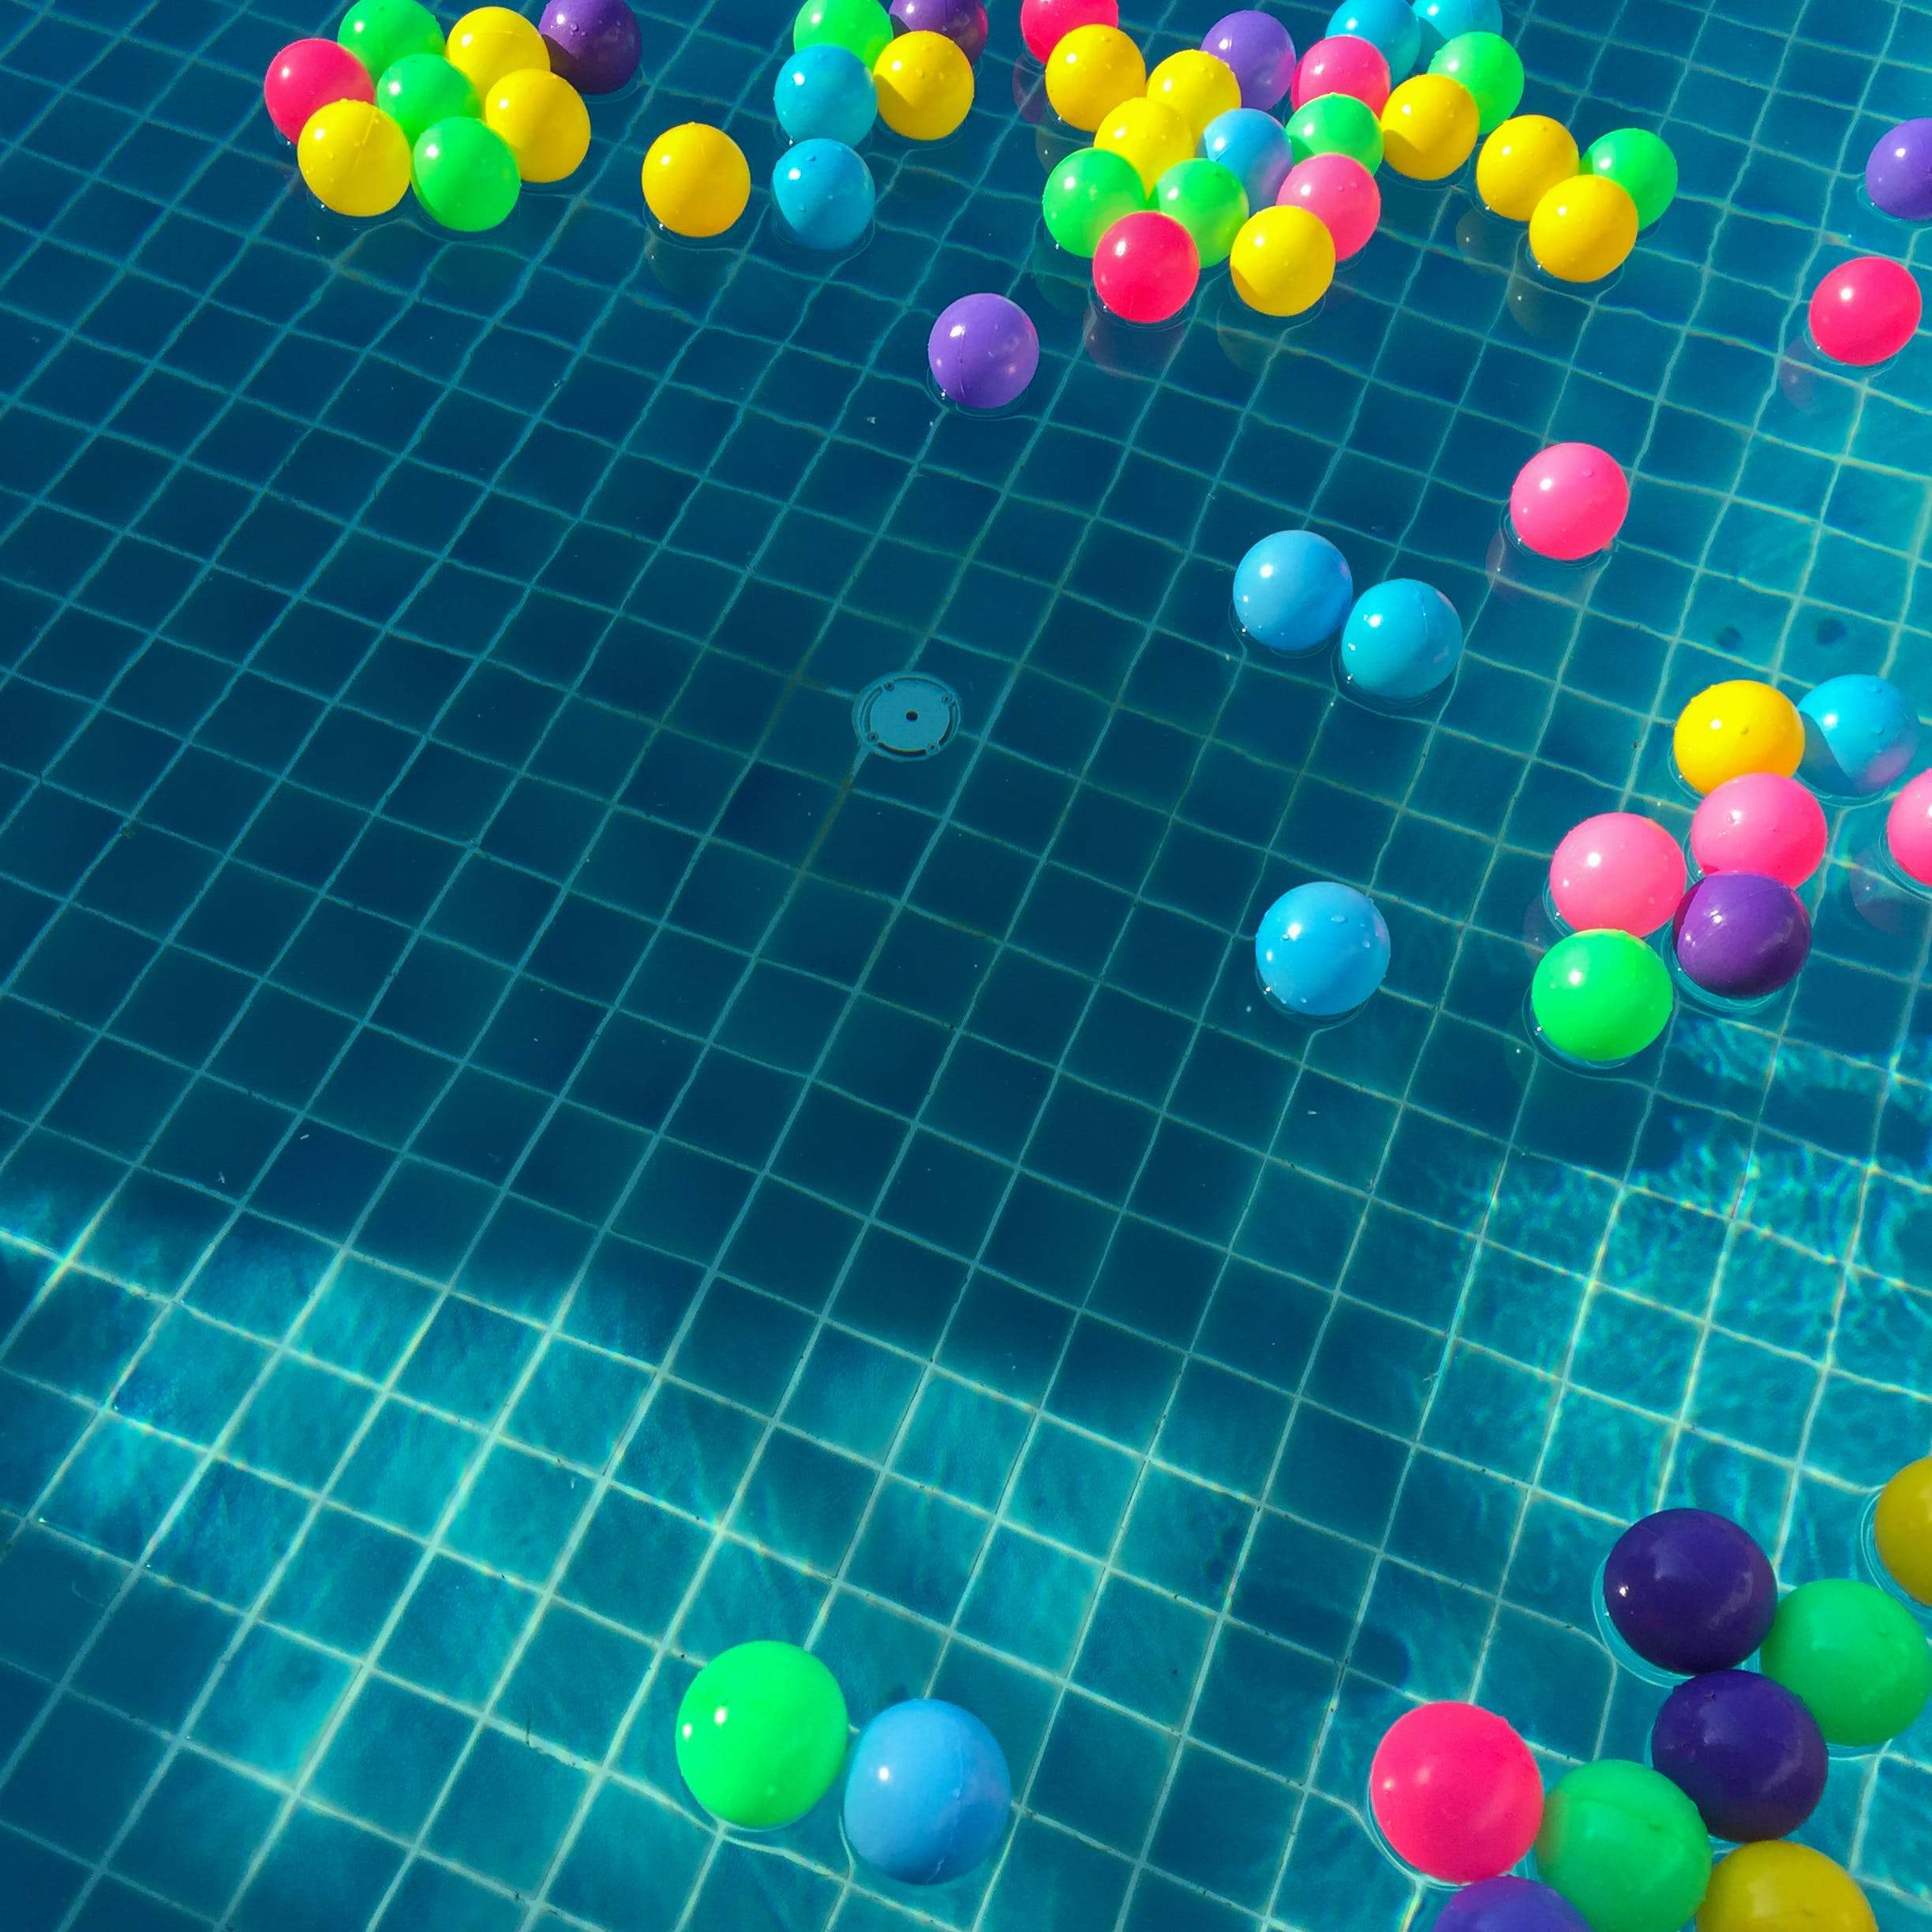 Assorted-color Balls Floating on Water